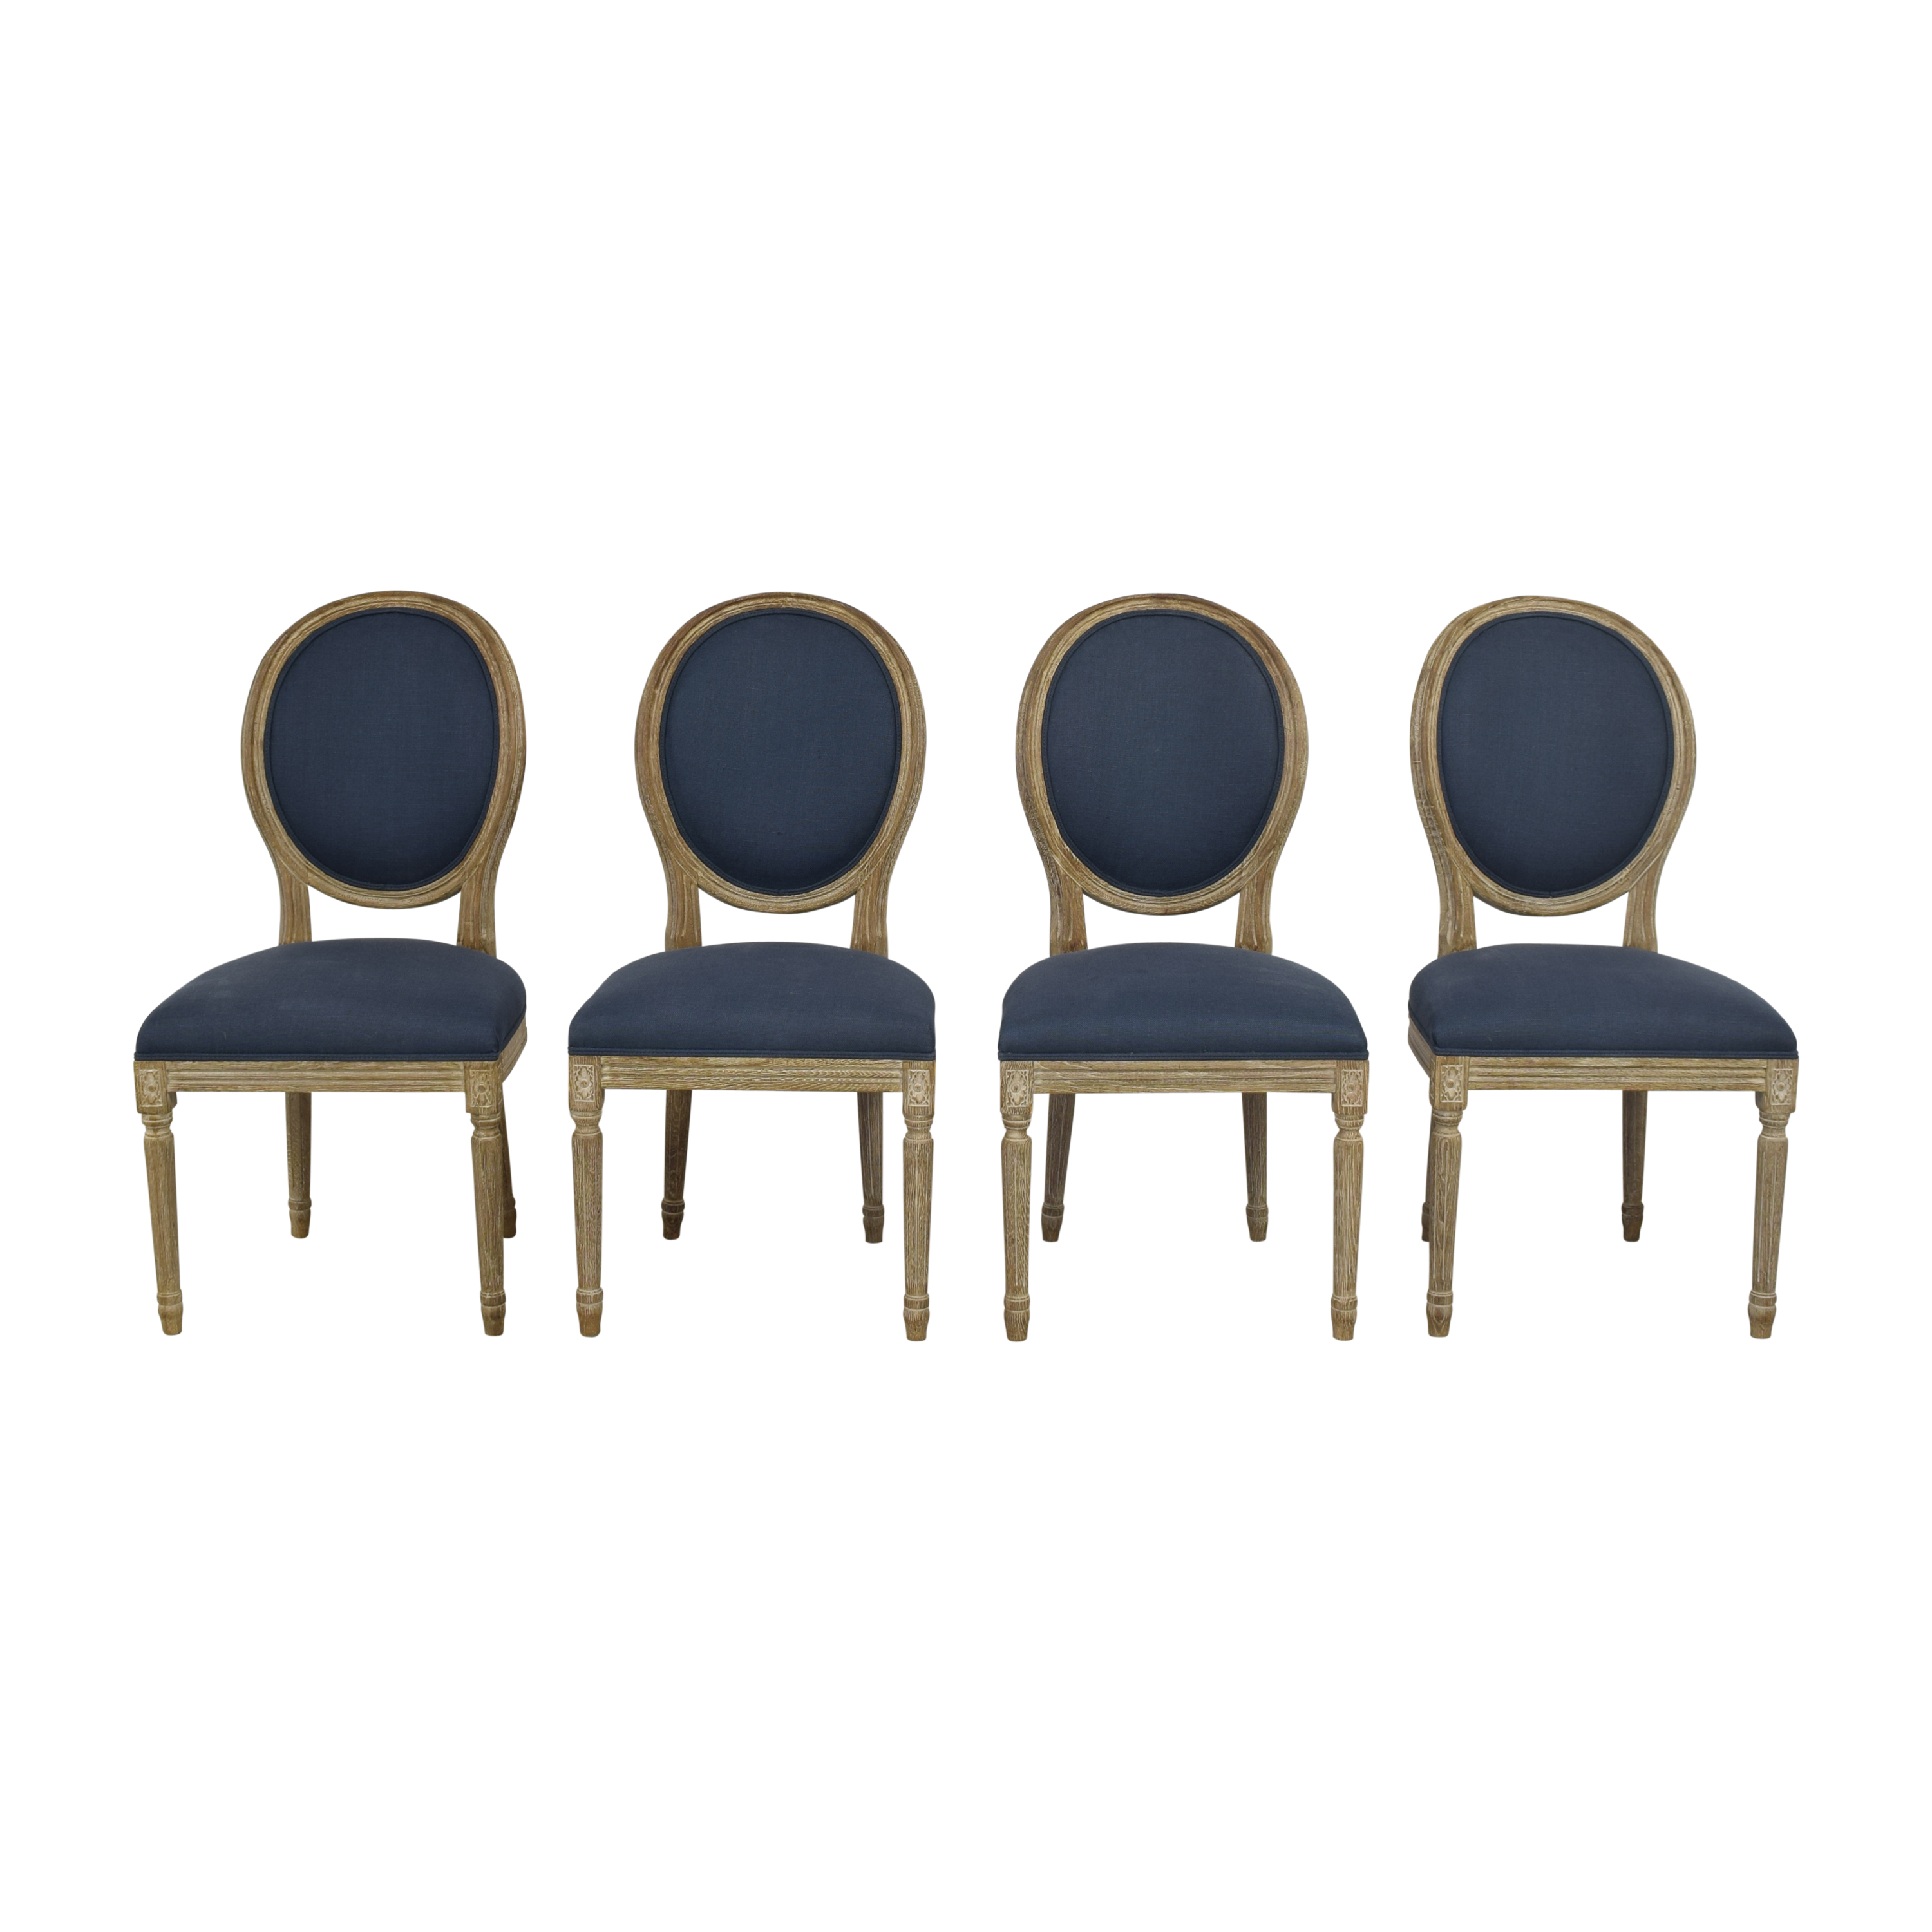 Restoration Hardware Restoration Hardware Vintage French Round Dining Chairs second hand